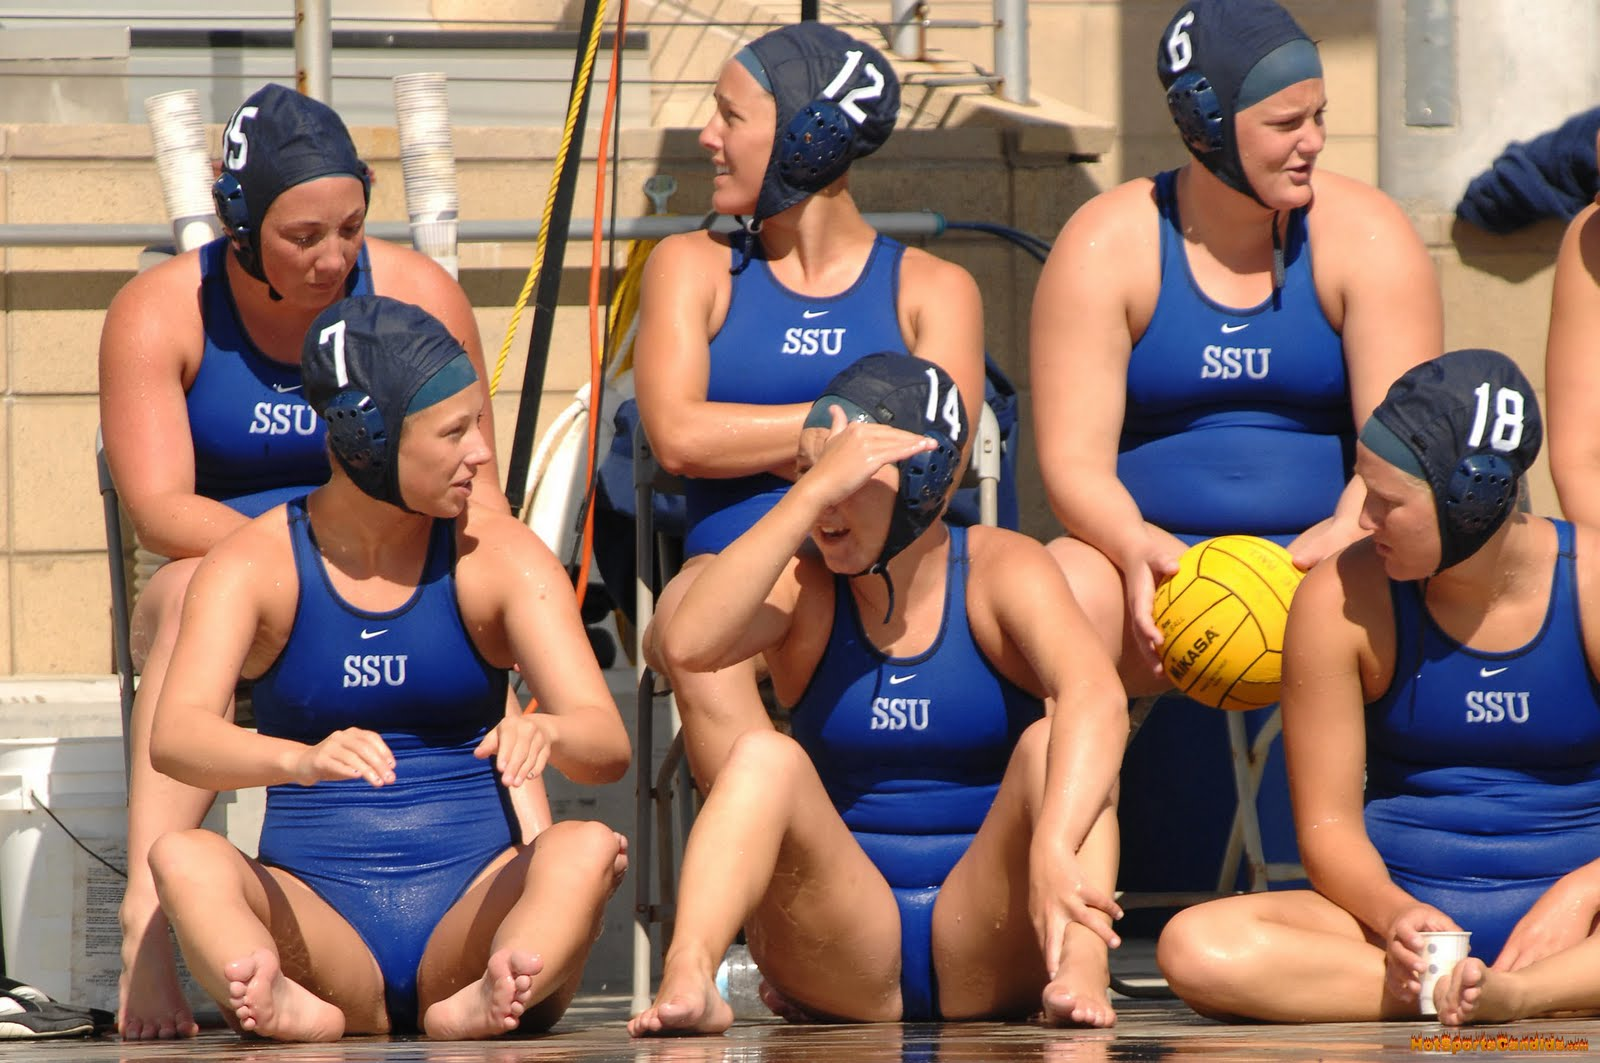 Girls water polo naked